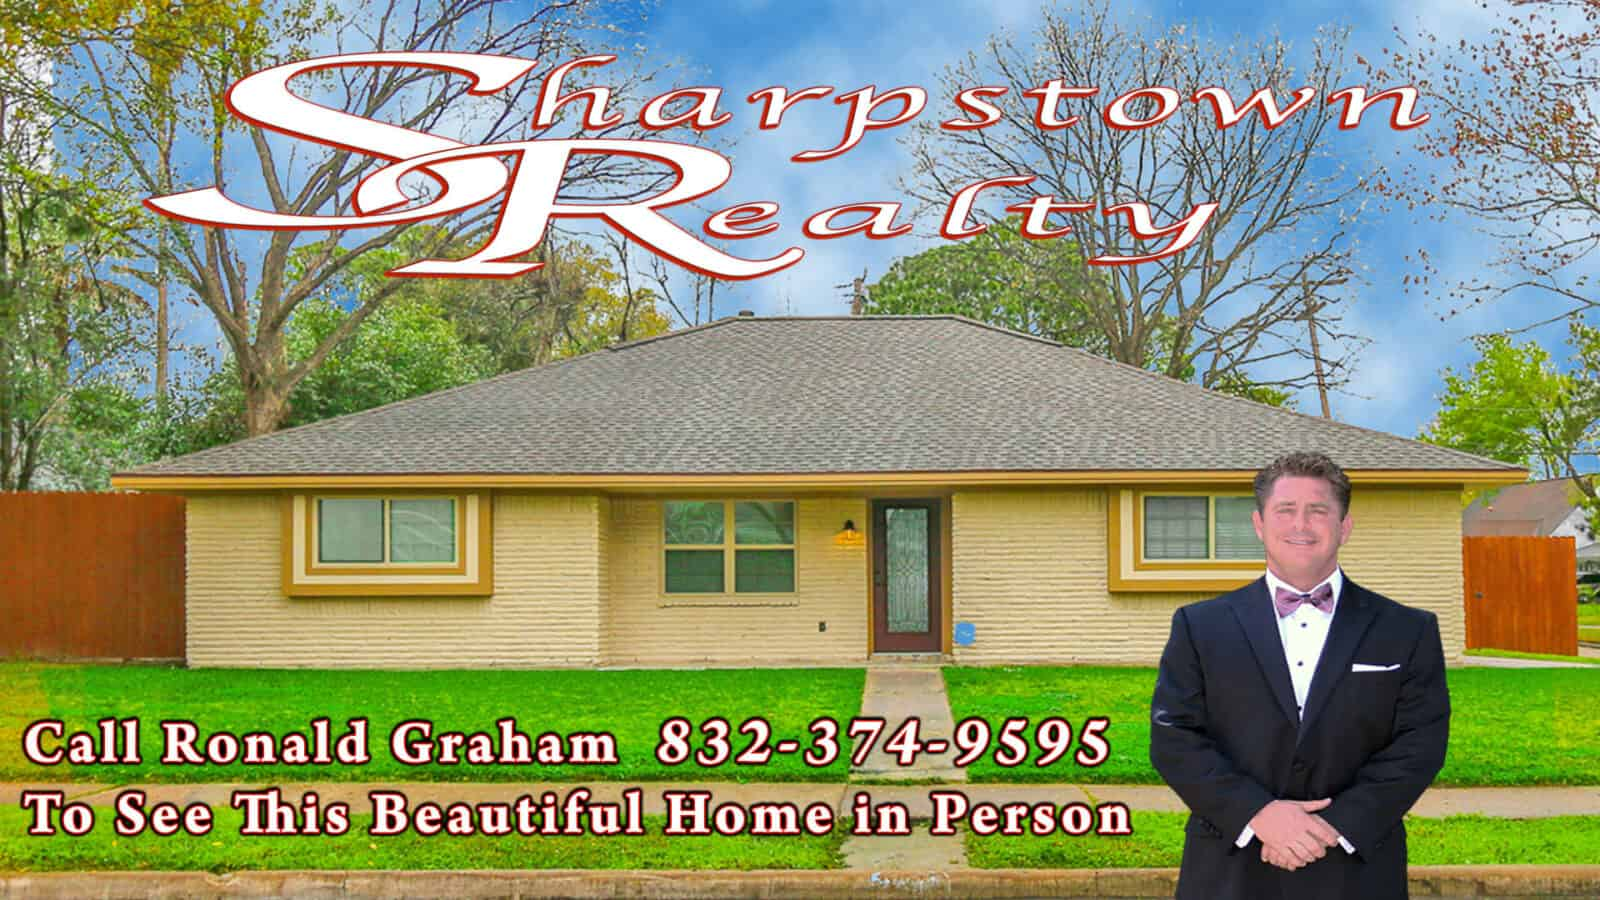 7518 carew sharpstown home for sale